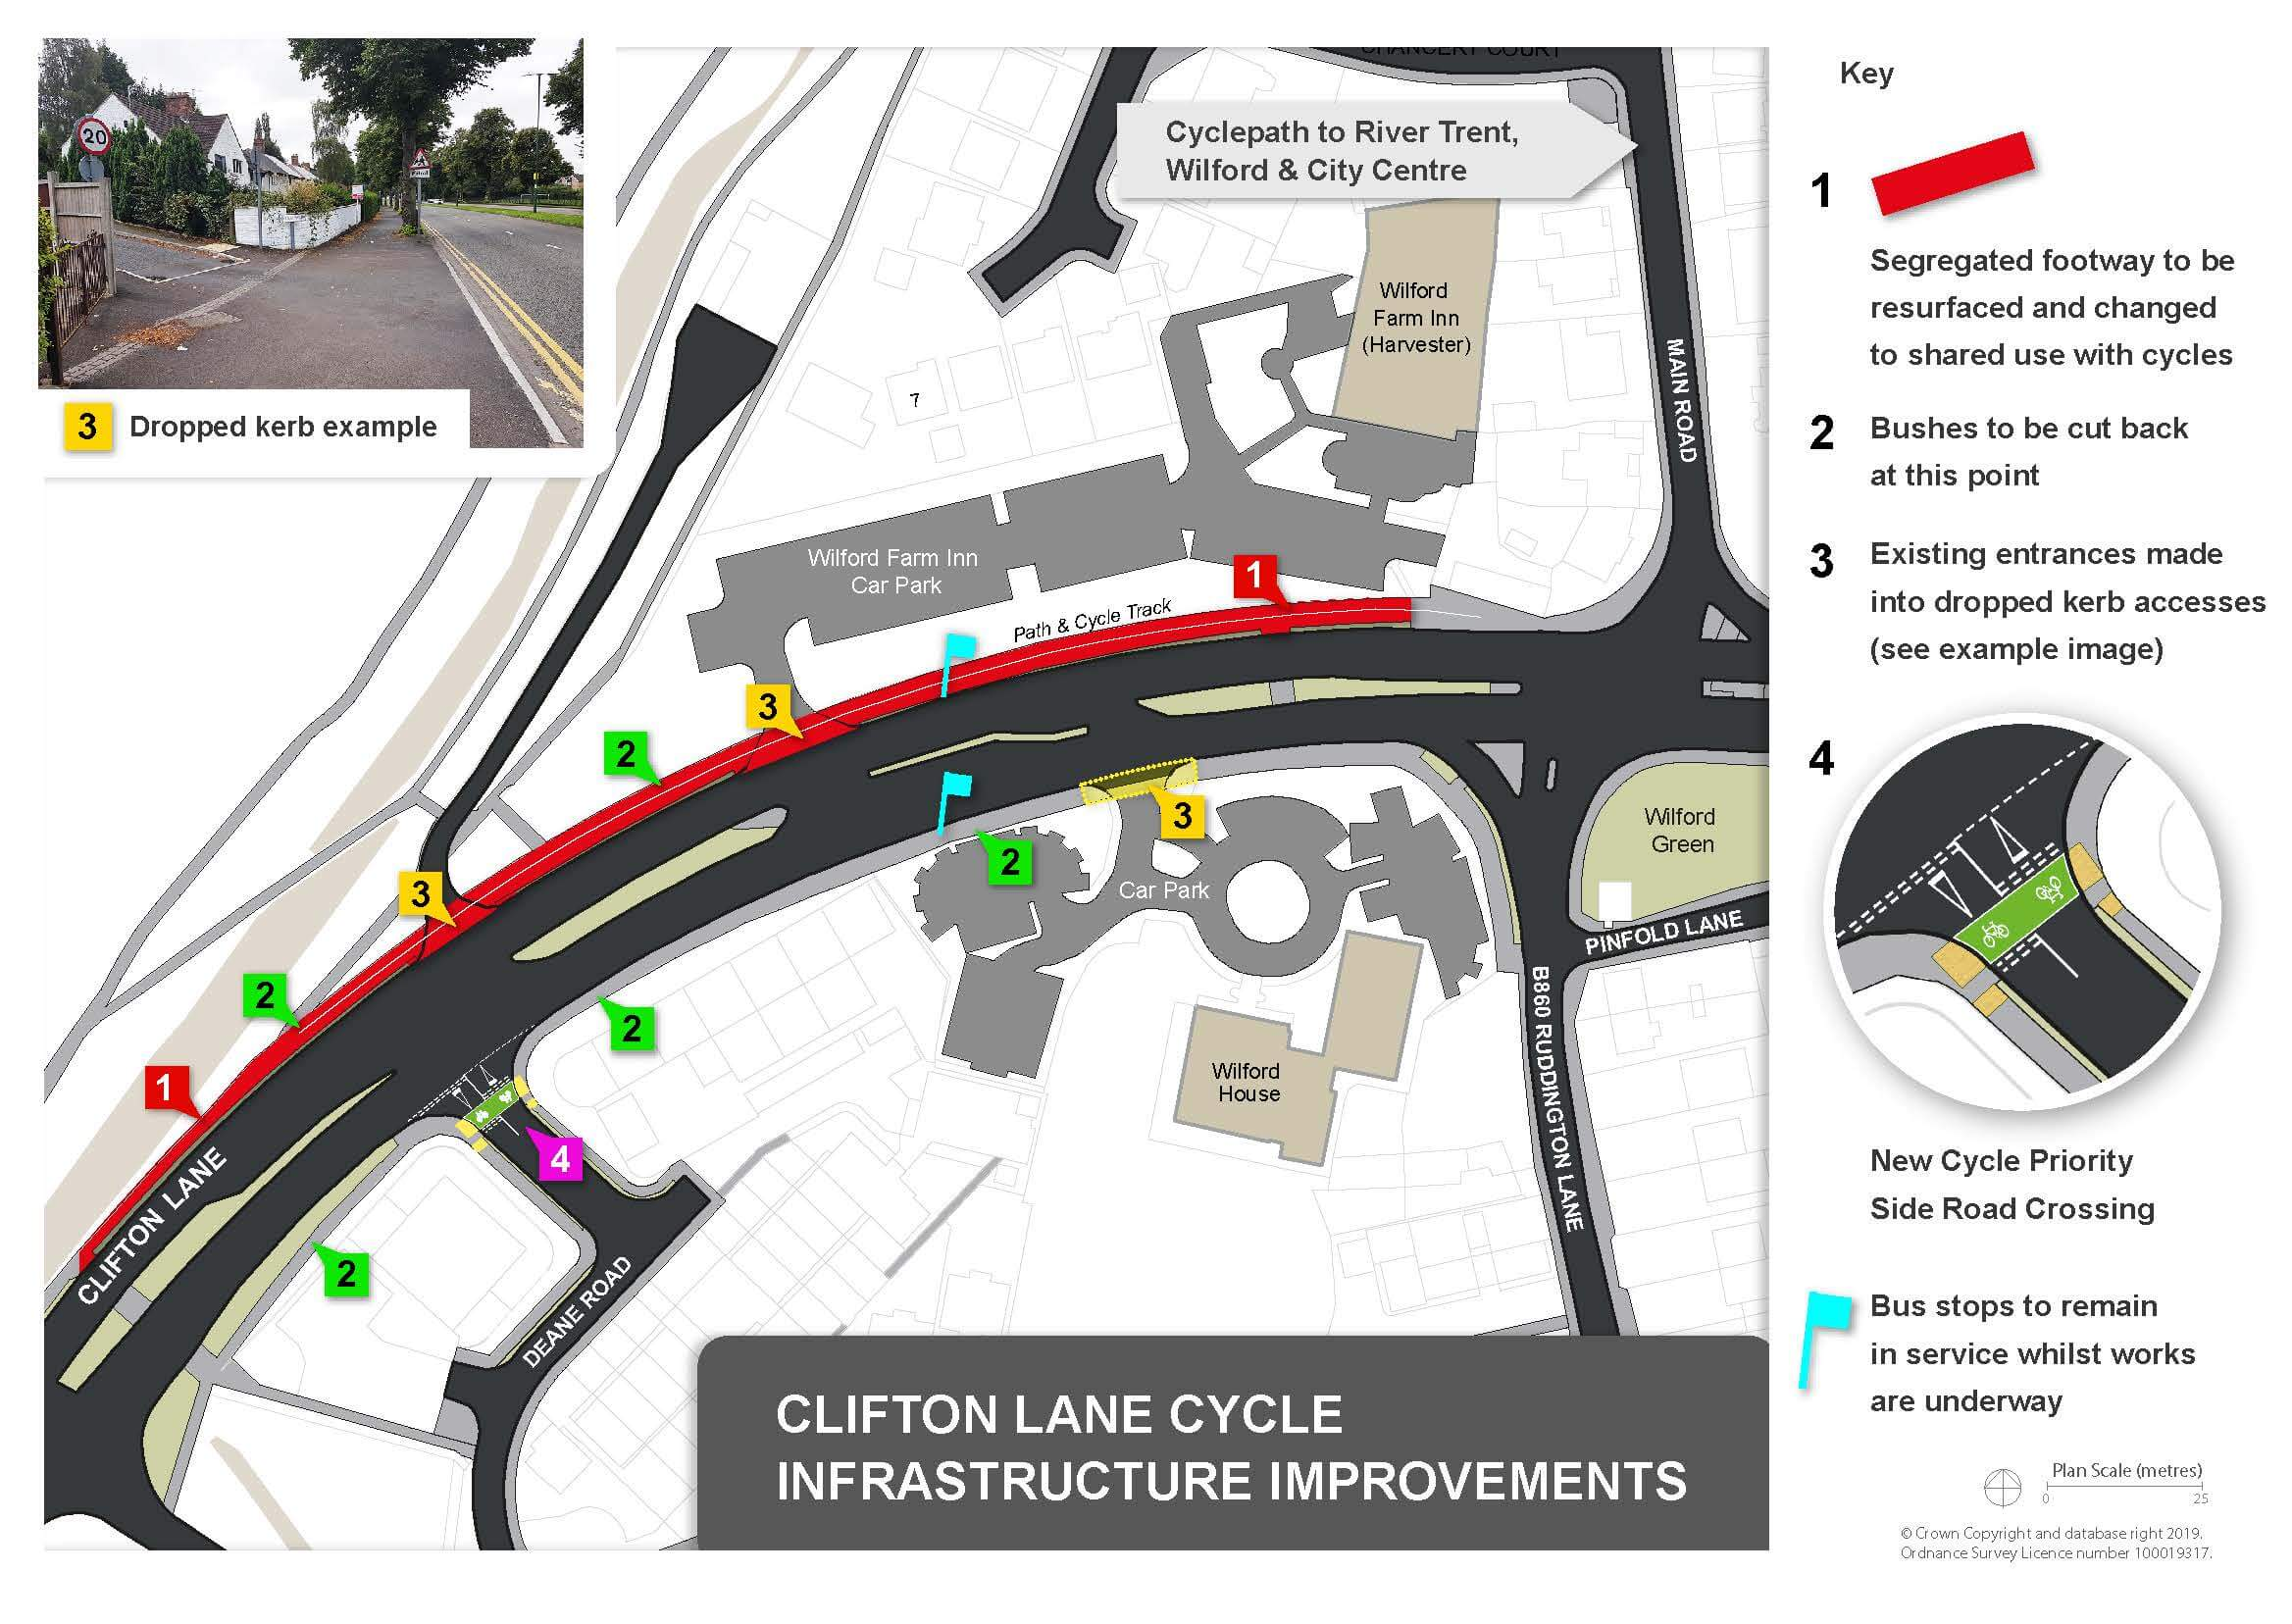 Map showing Clifton Lane cycle improvements